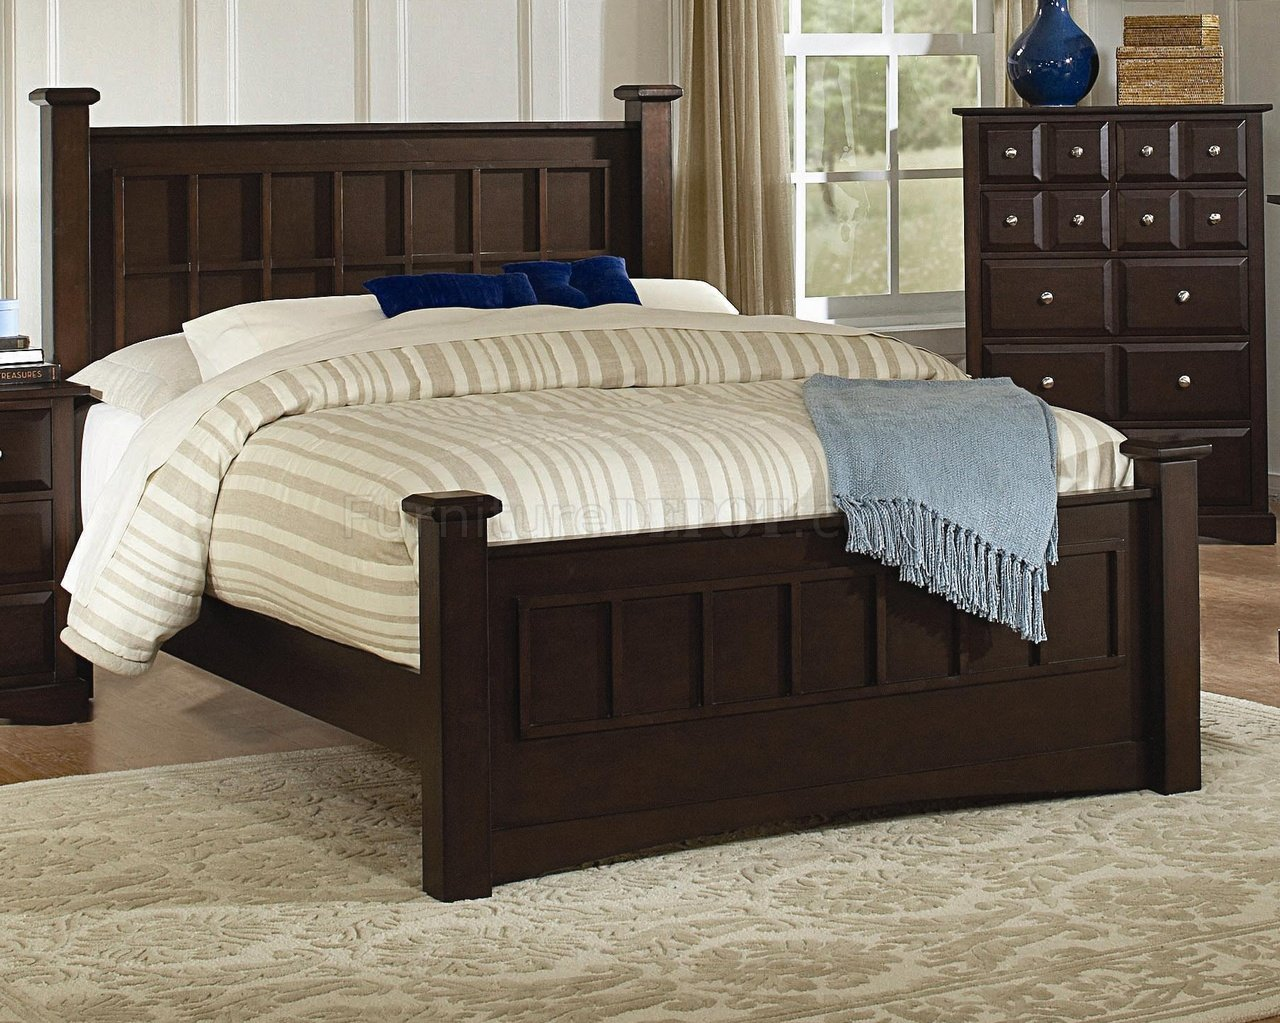 Transitional Bedroom Furniture transitional bedroom design for popular transitional master. best